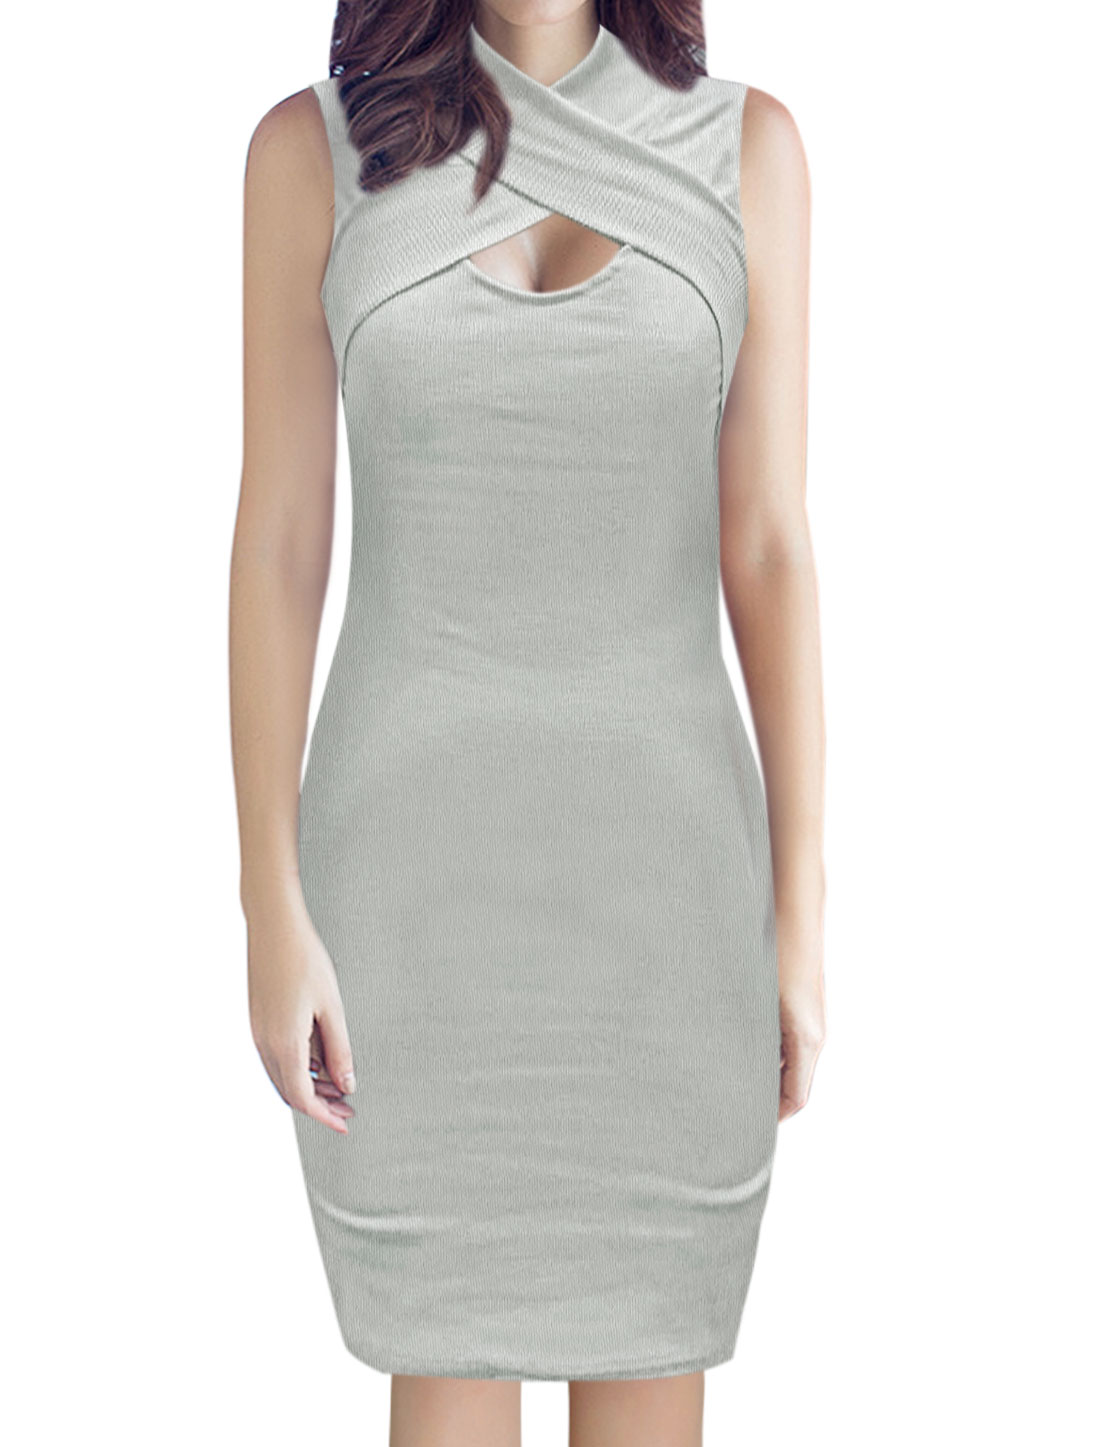 Women High Neck Sleeveless Cut Out Front Ribbed Bodycon Dress Gray L